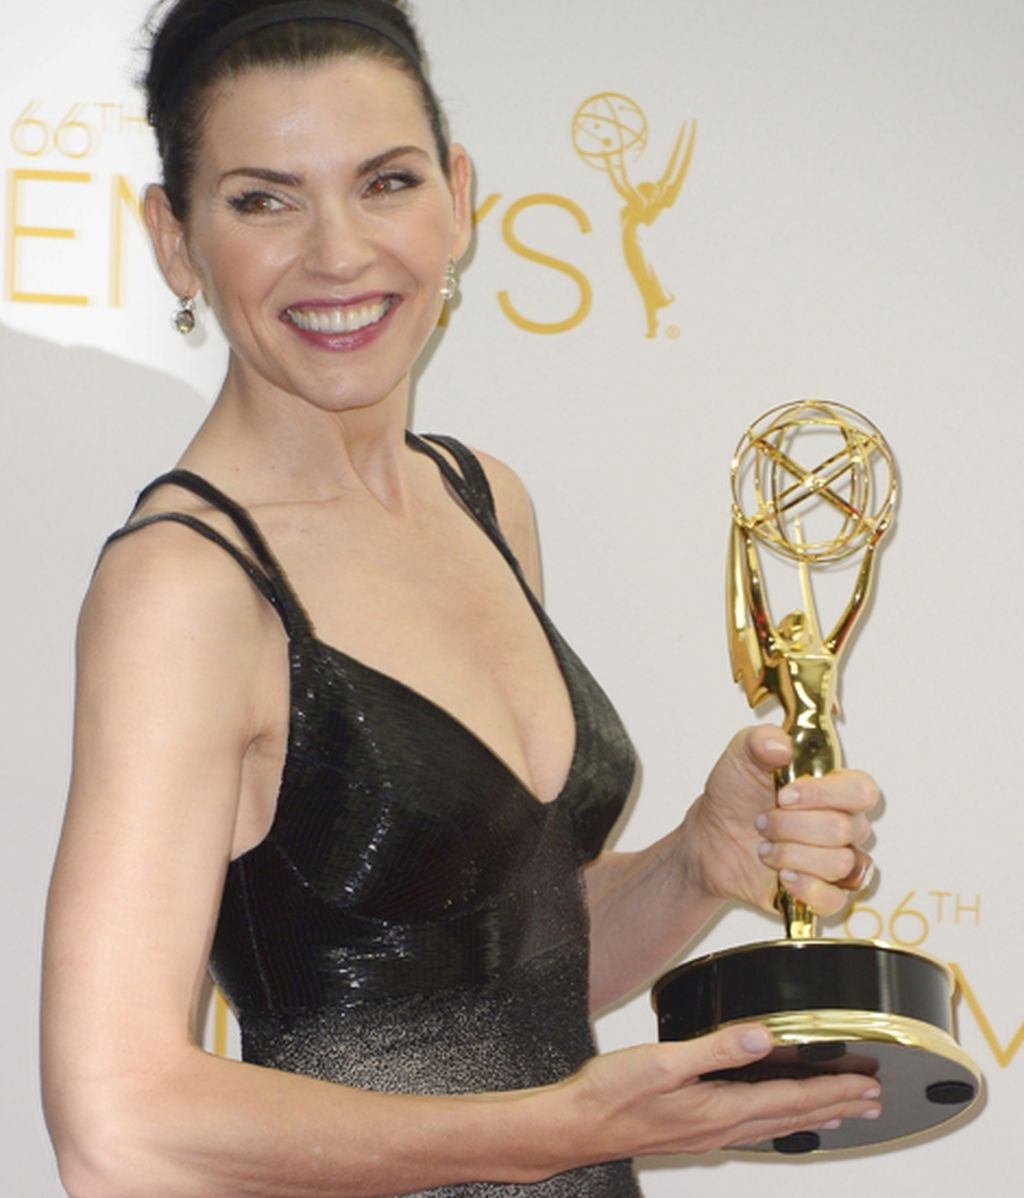 Julianna Margulies, mejor actriz de drama por 'The good wife'